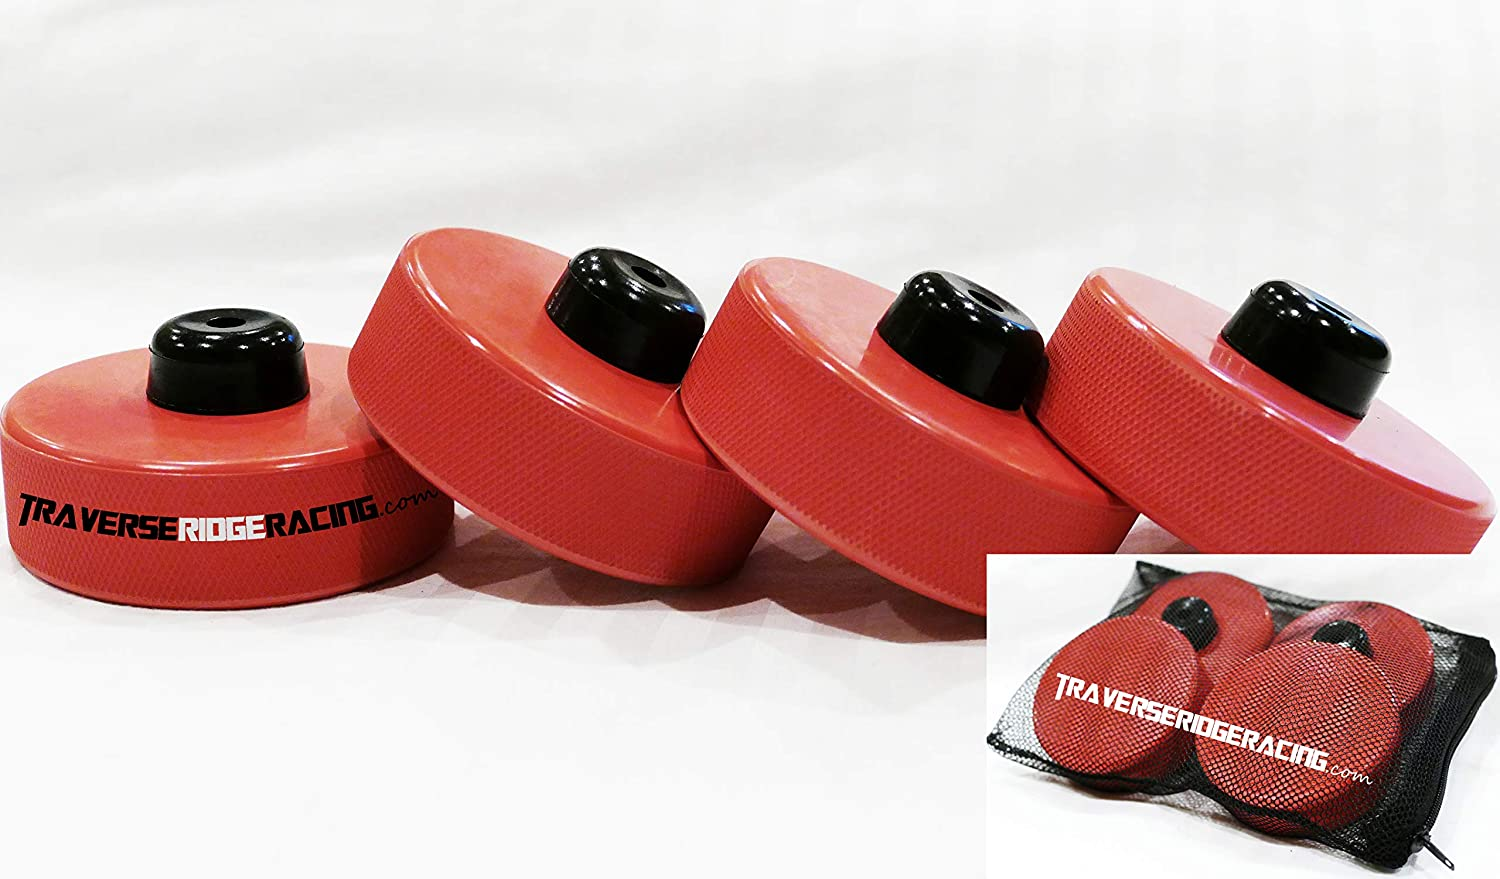 Y//S//X Lifting Jack OAD Jack Lift Point Pad Adapter CPROSP 4 Pack Tesla Model 3